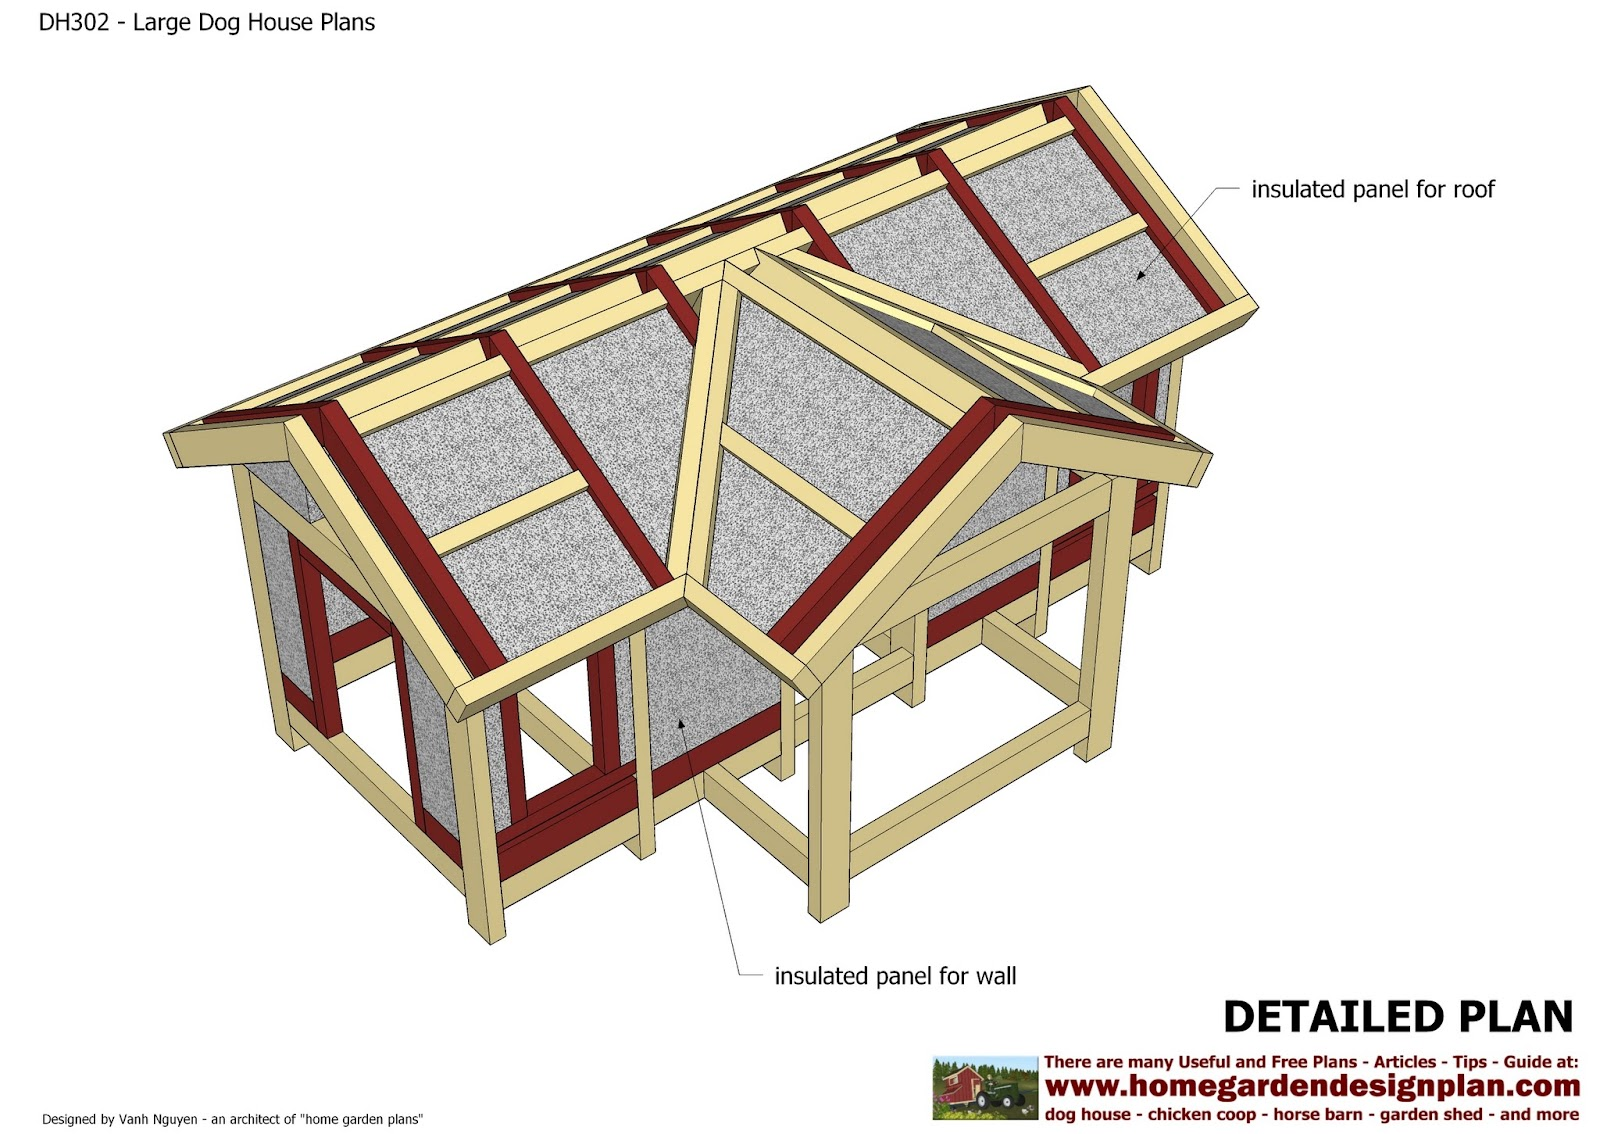 stunning dog house plans free gallery - fresh today designs ideas